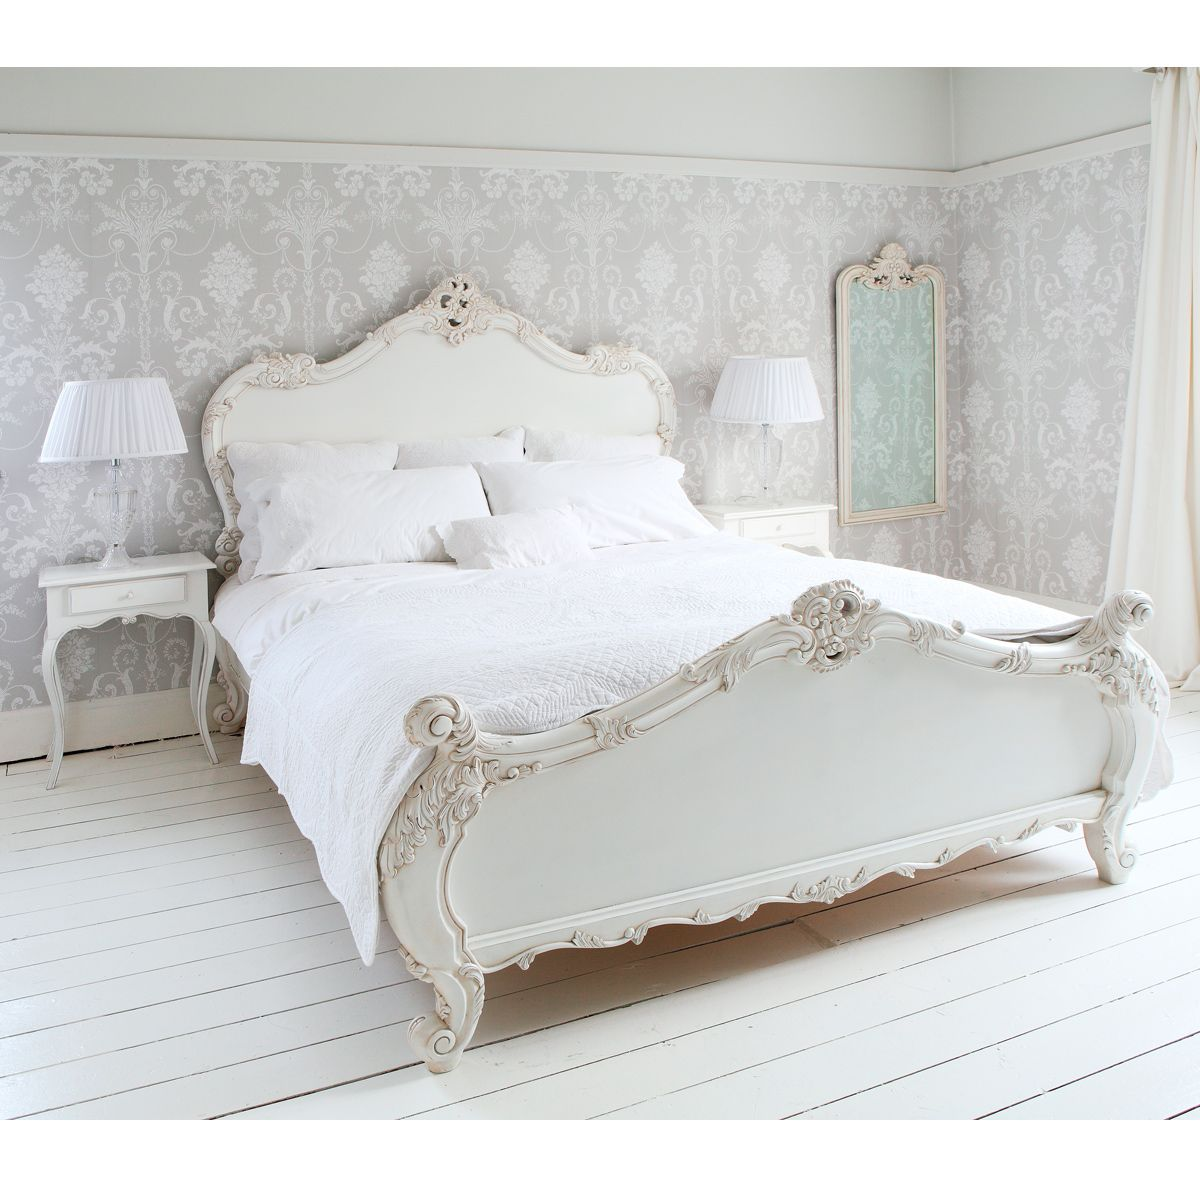 new provencal sassy white french bed french beds beds